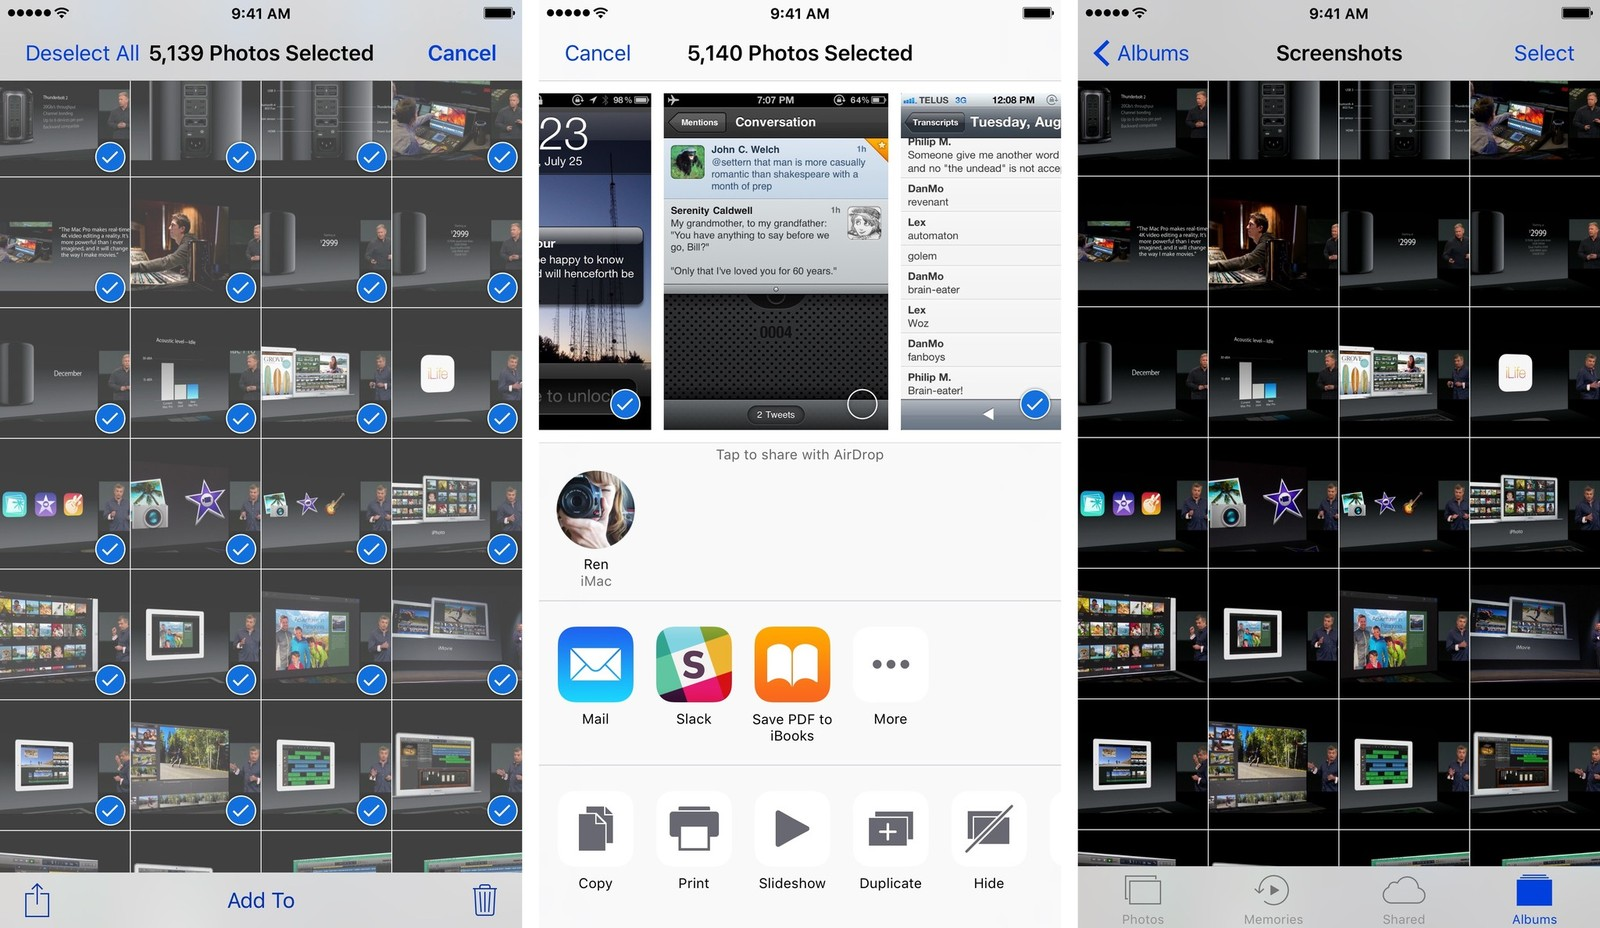 How to Hide Photos From iPhone Photos App?